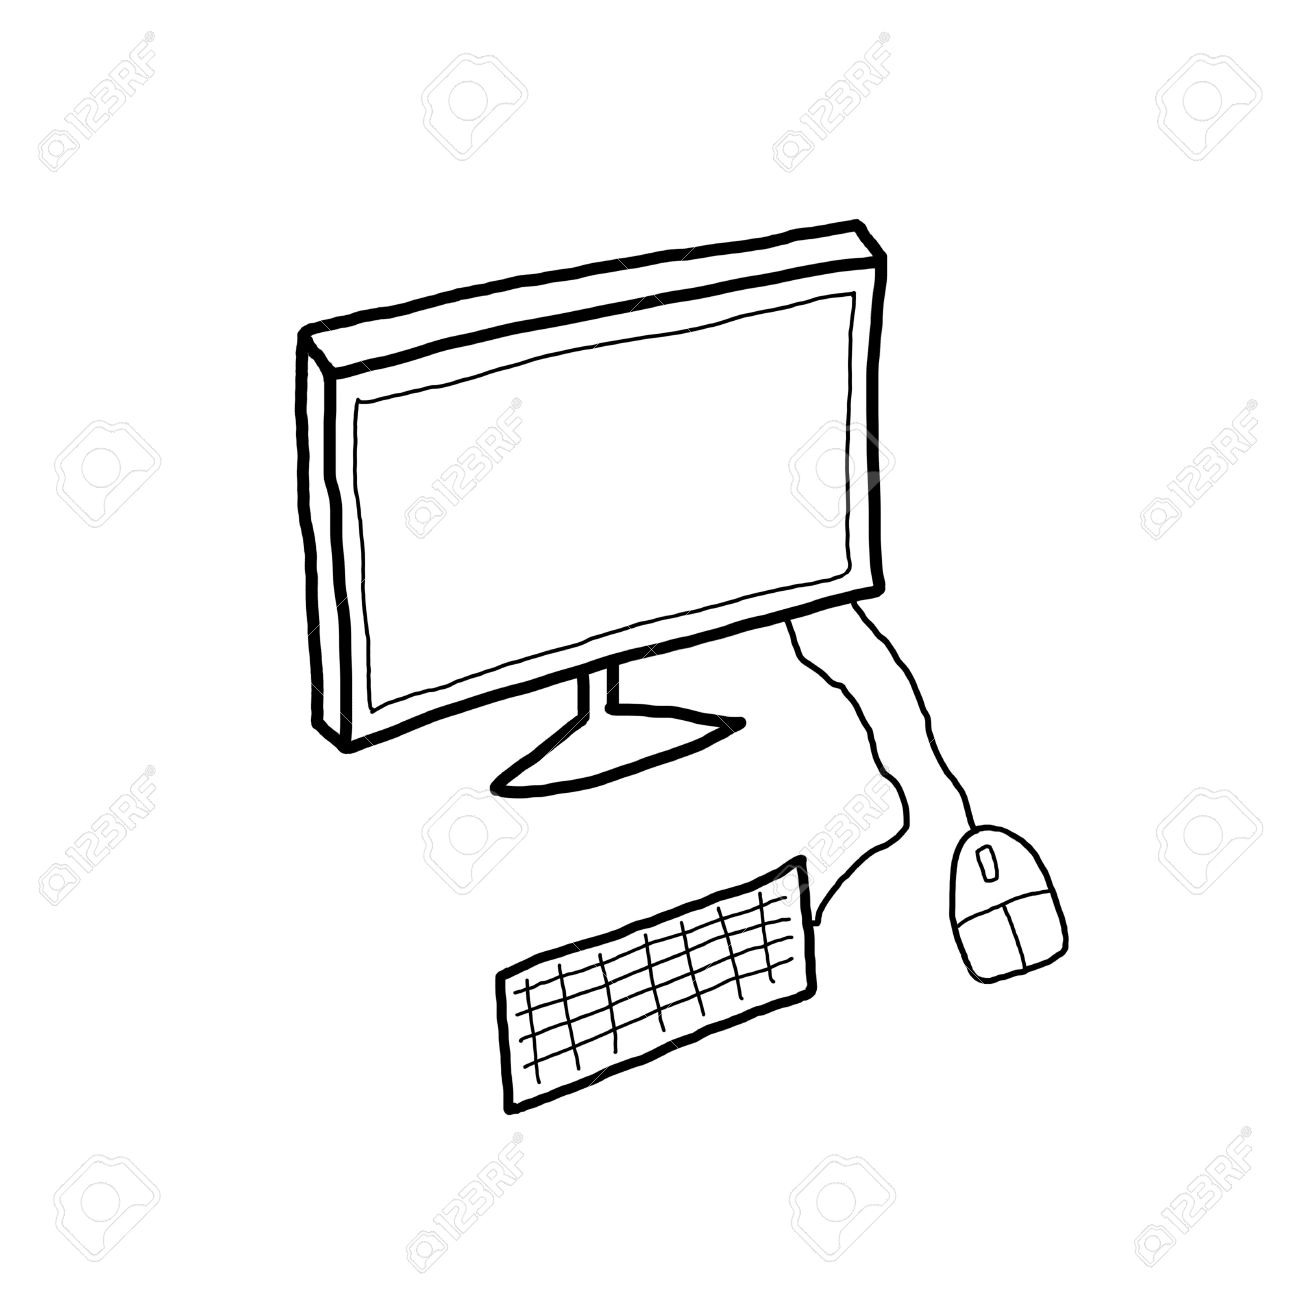 Desktop Computer Drawing